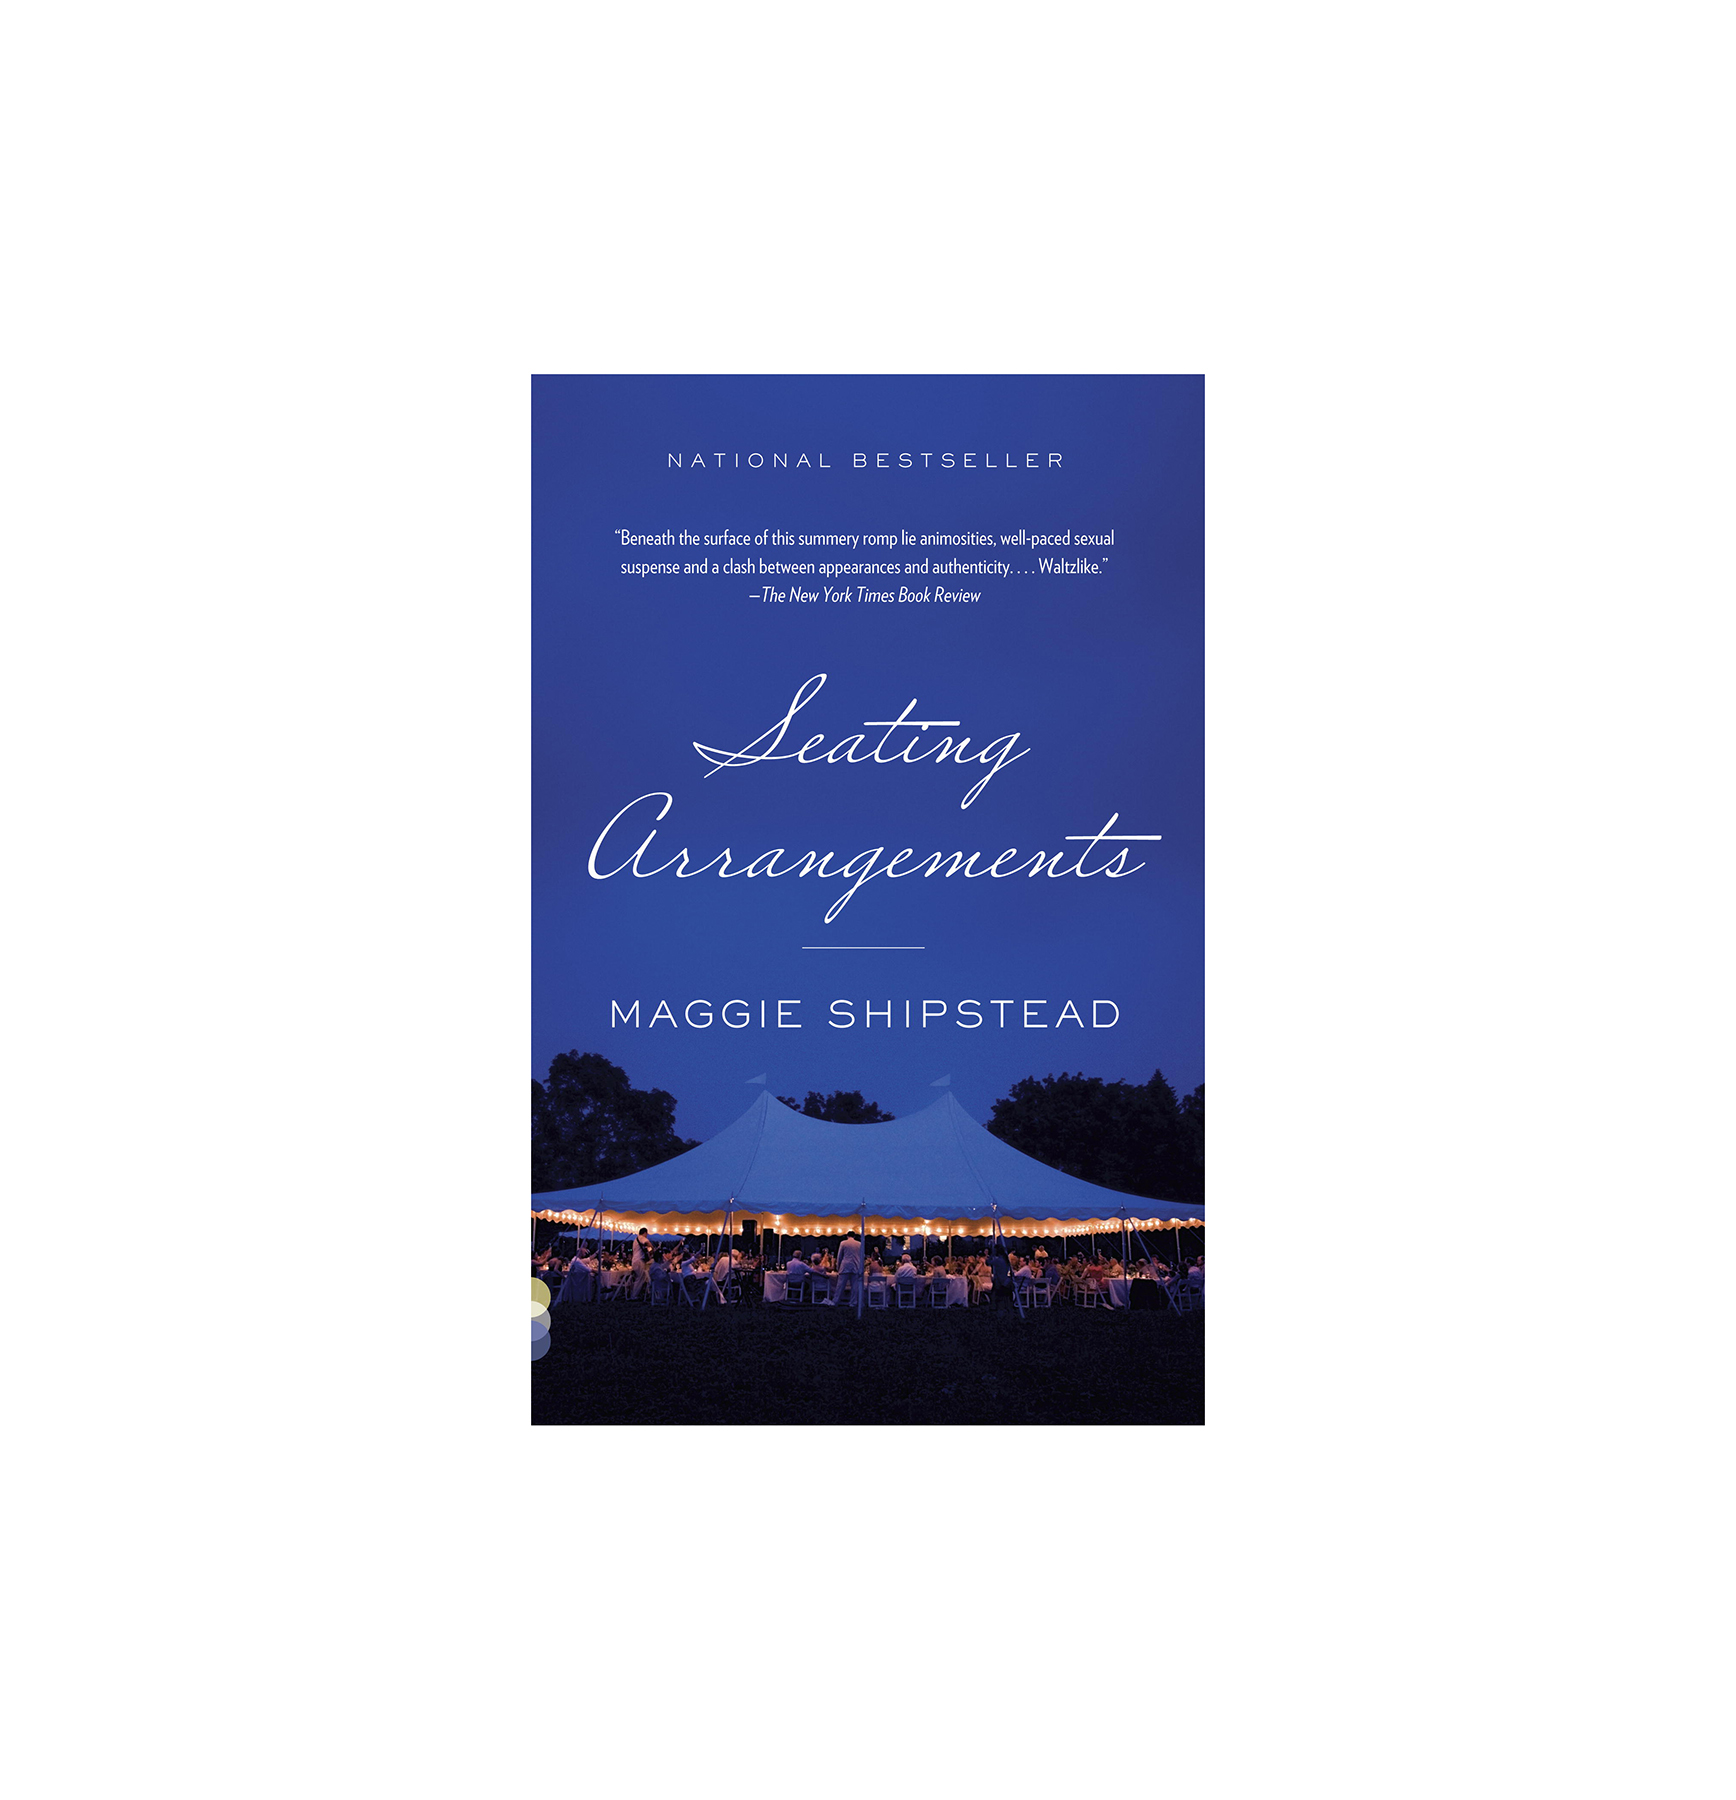 Seating Arrangements, by Maggie Shipstead